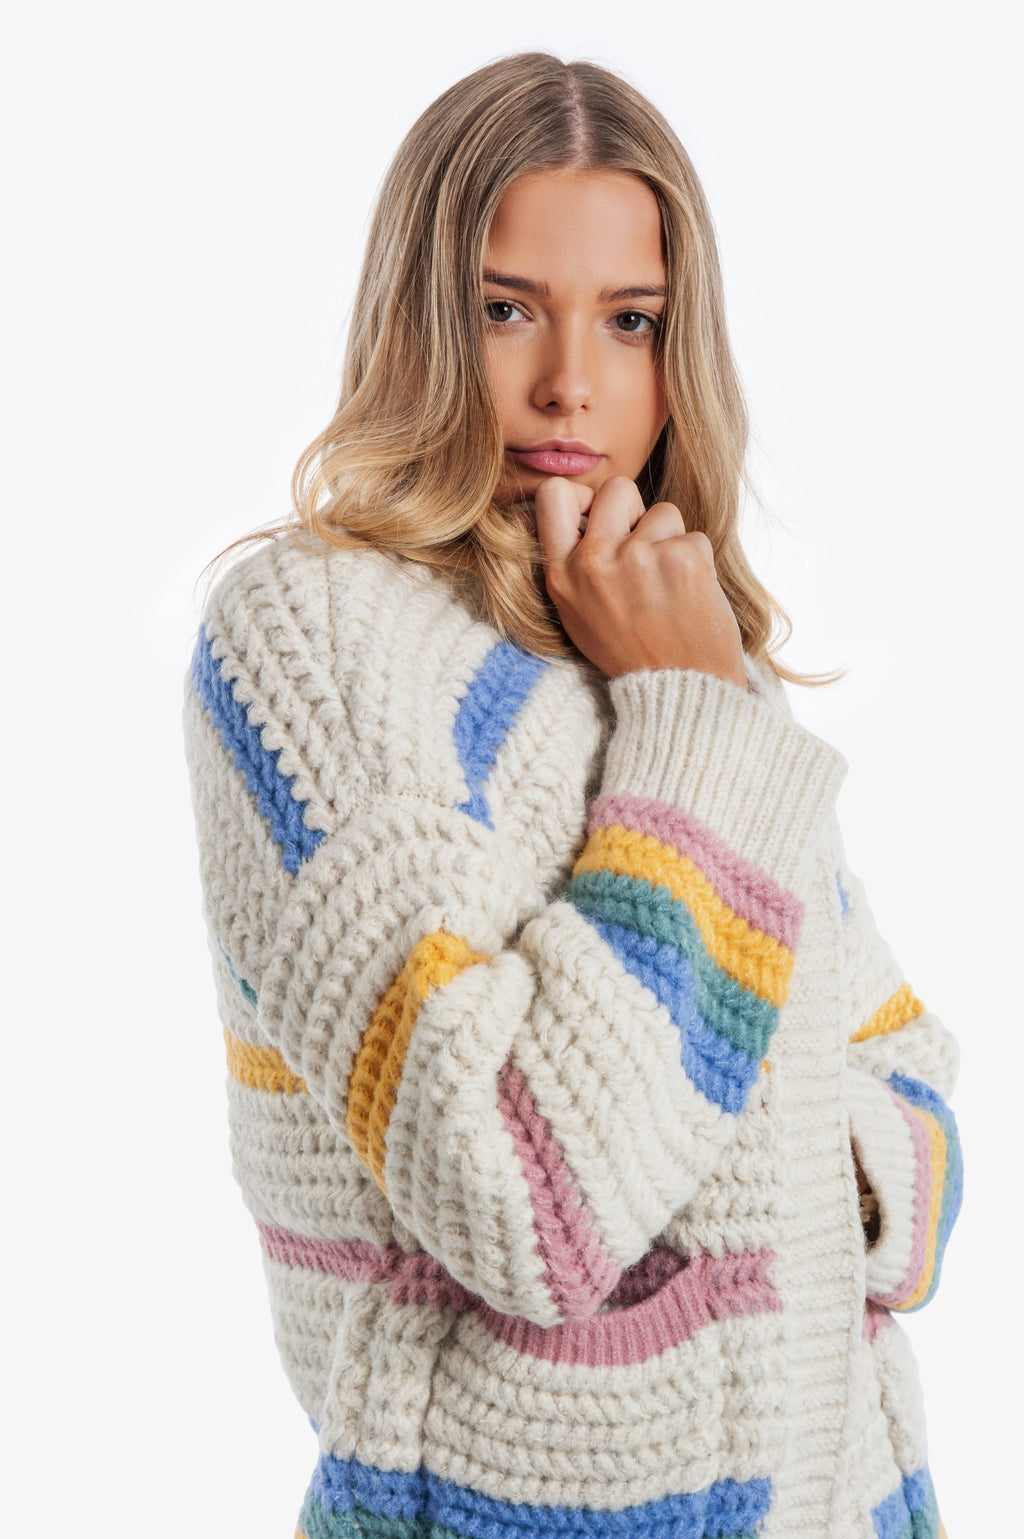 Candy Chunky Knit Cardigan - Islandlace